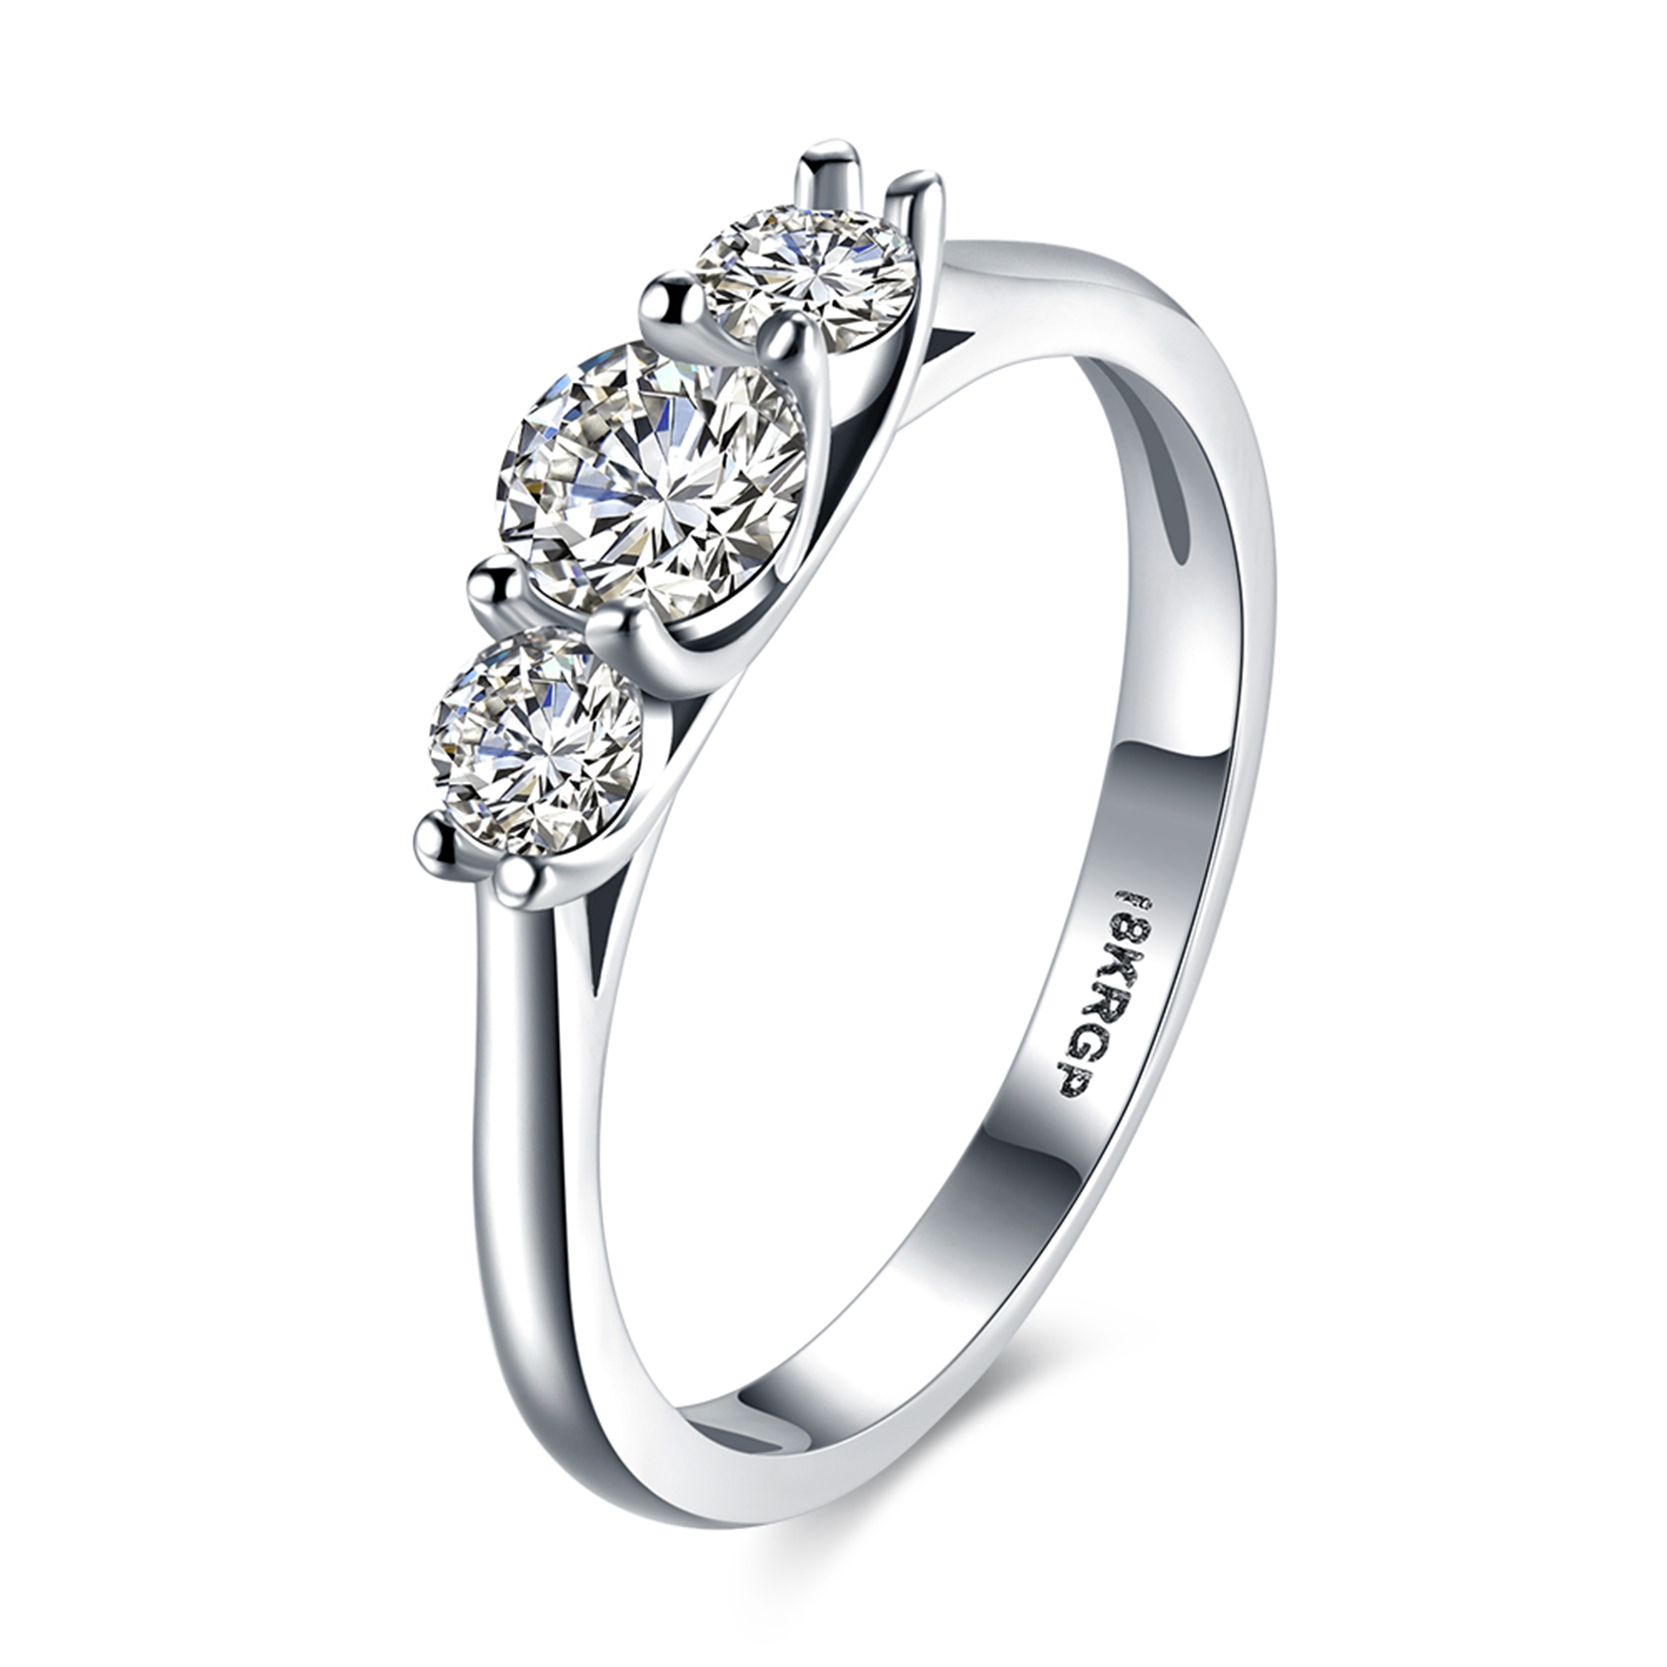 Drole Fashion Silver Ring Wedding Rings Jewelry Cz Zircon 3 Stone Engagement  Rings For Women(